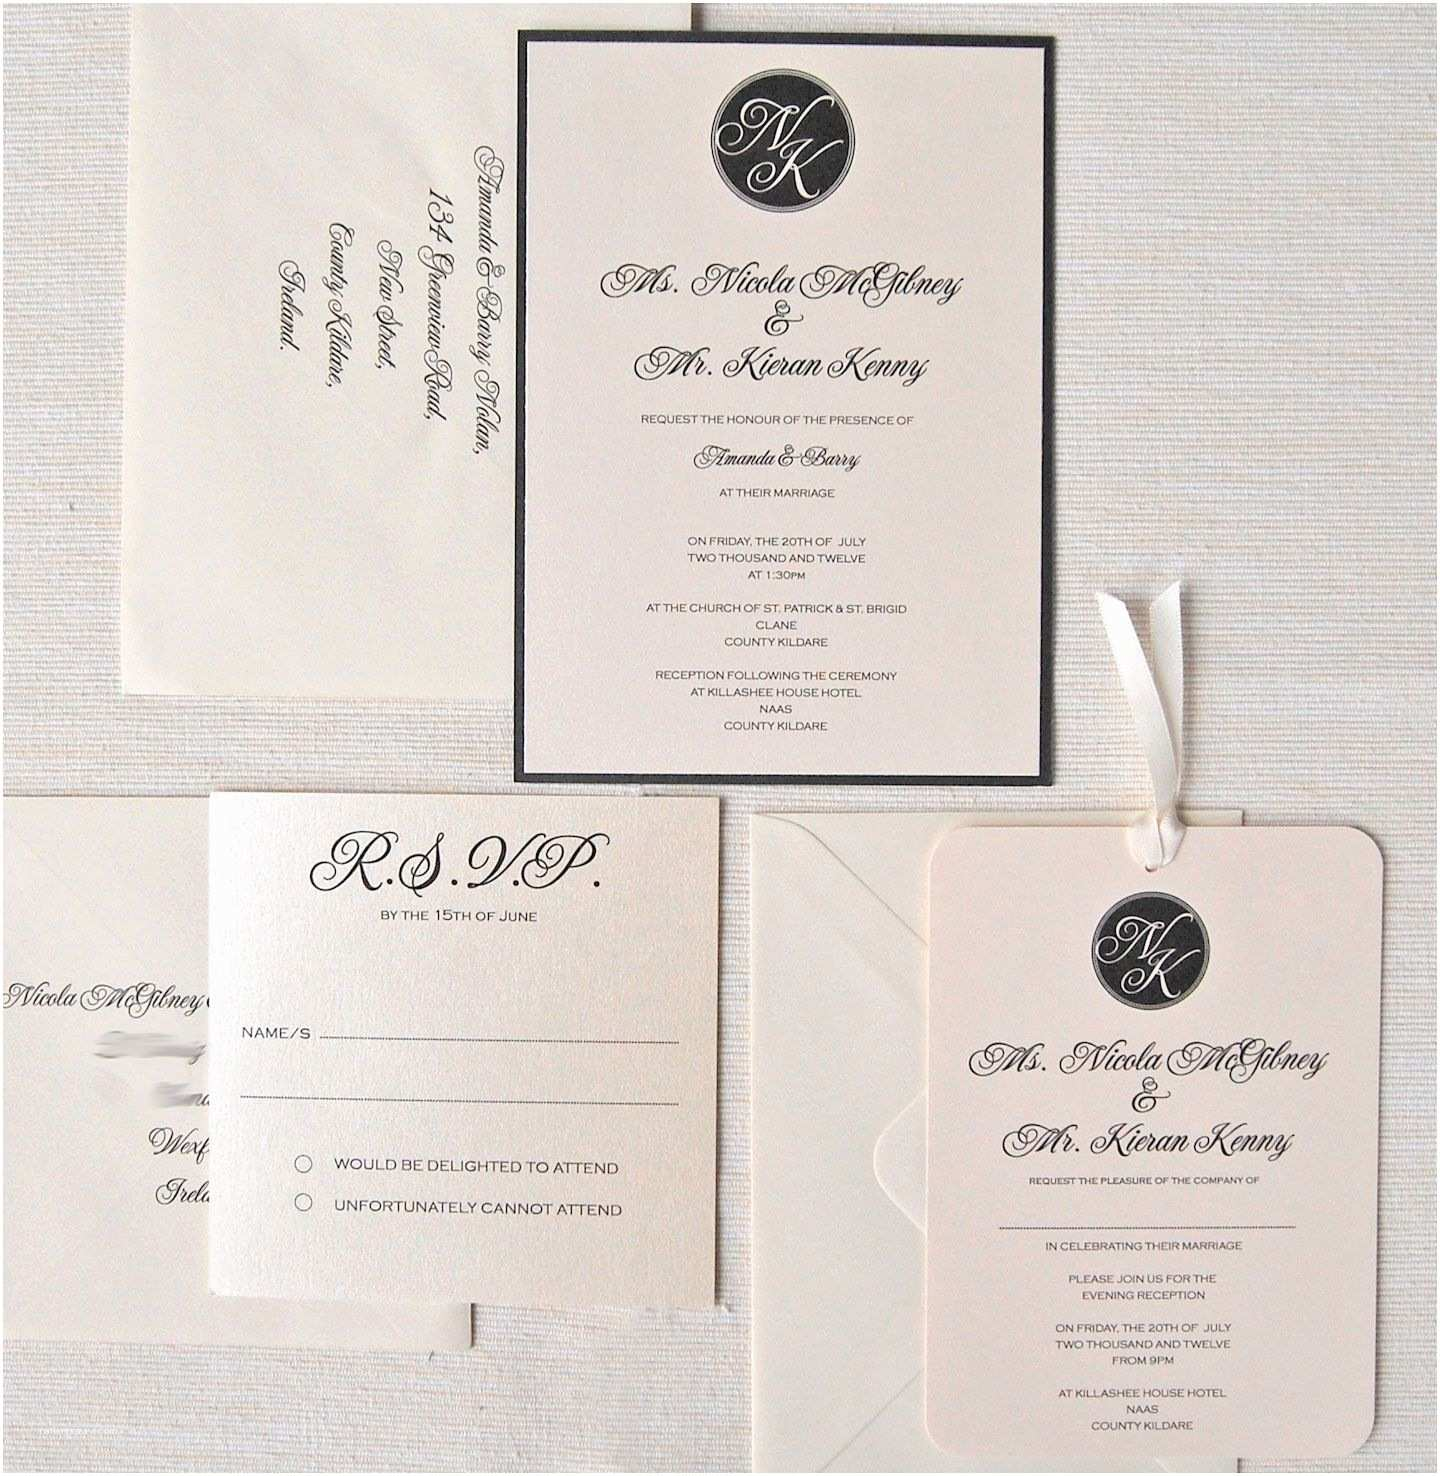 Wedding Invitation Examples Wedding Invitations Response Cards Wedding Invitations